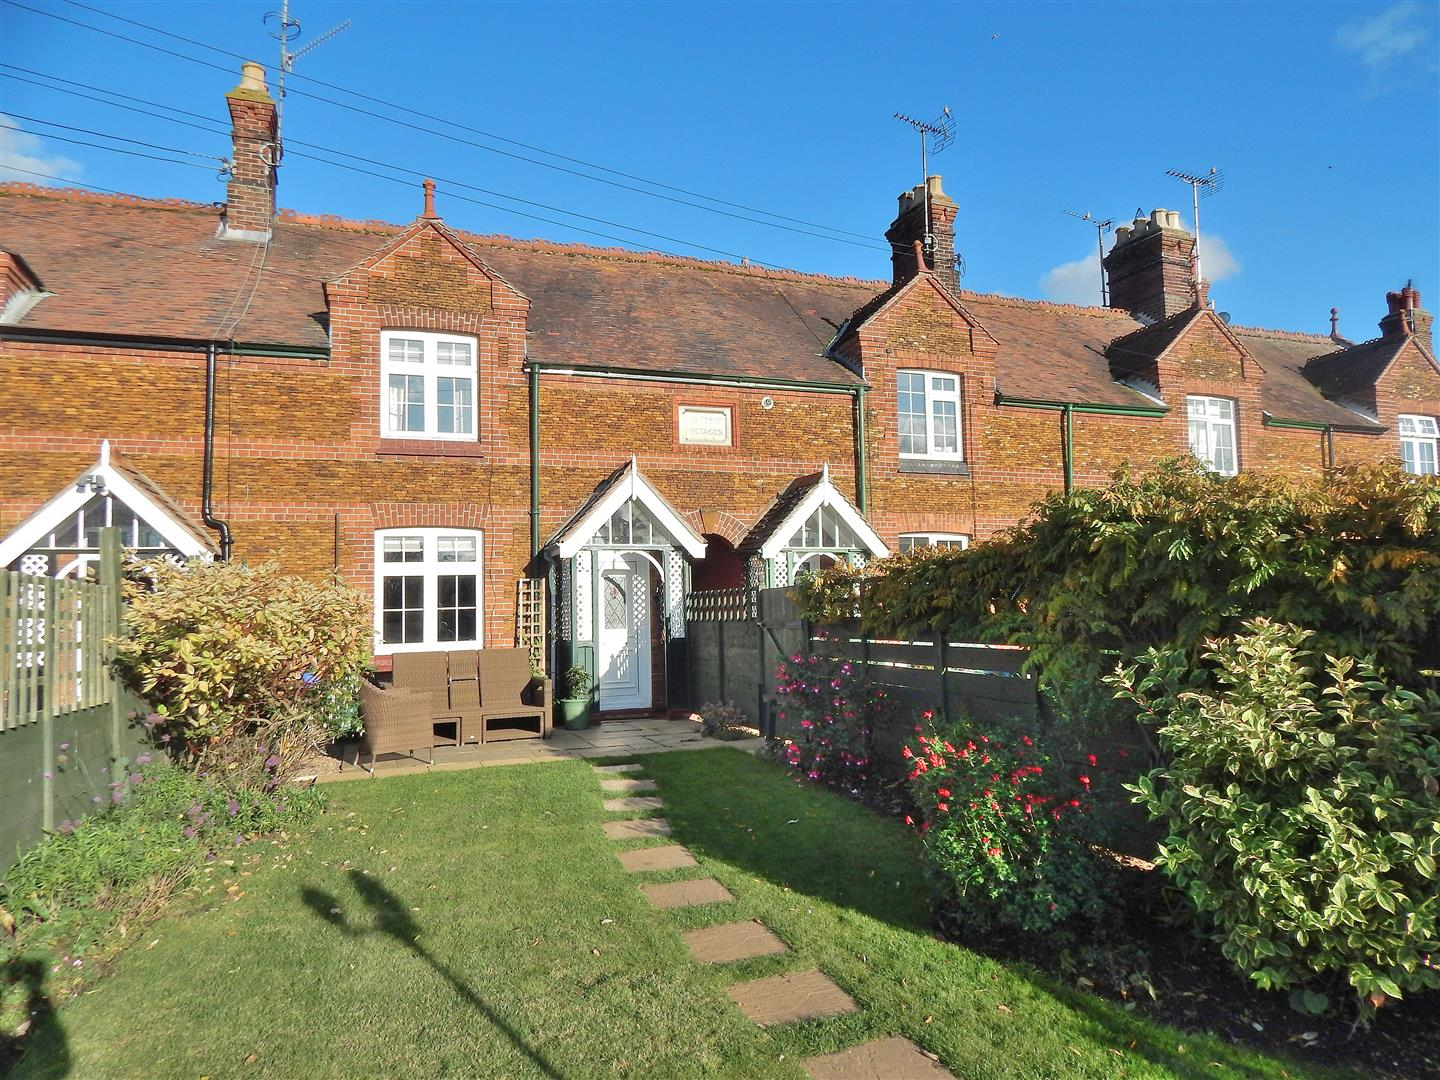 2 bed cottage for sale in King's Lynn, PE31 6QQ  - Property Image 1